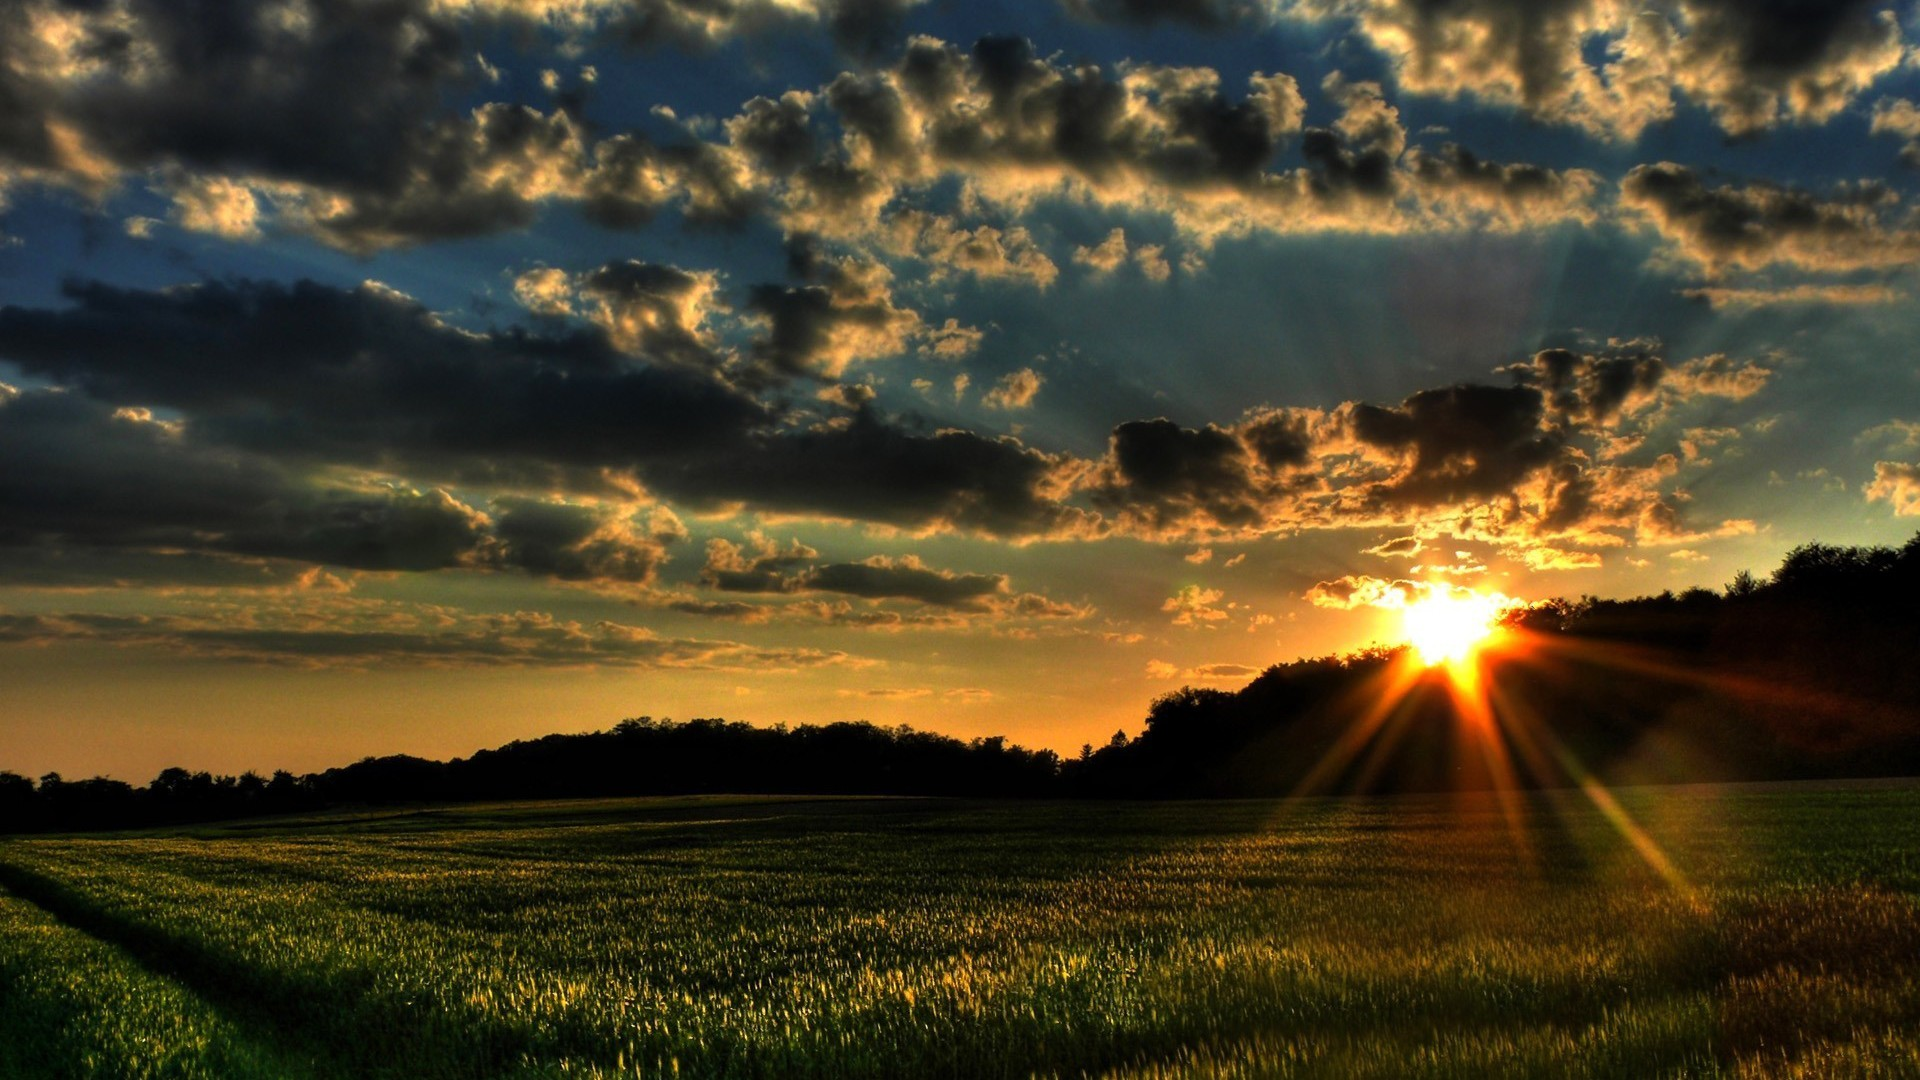 morning nature spring wallpaper | allwallpaper.in #3900 | pc | en